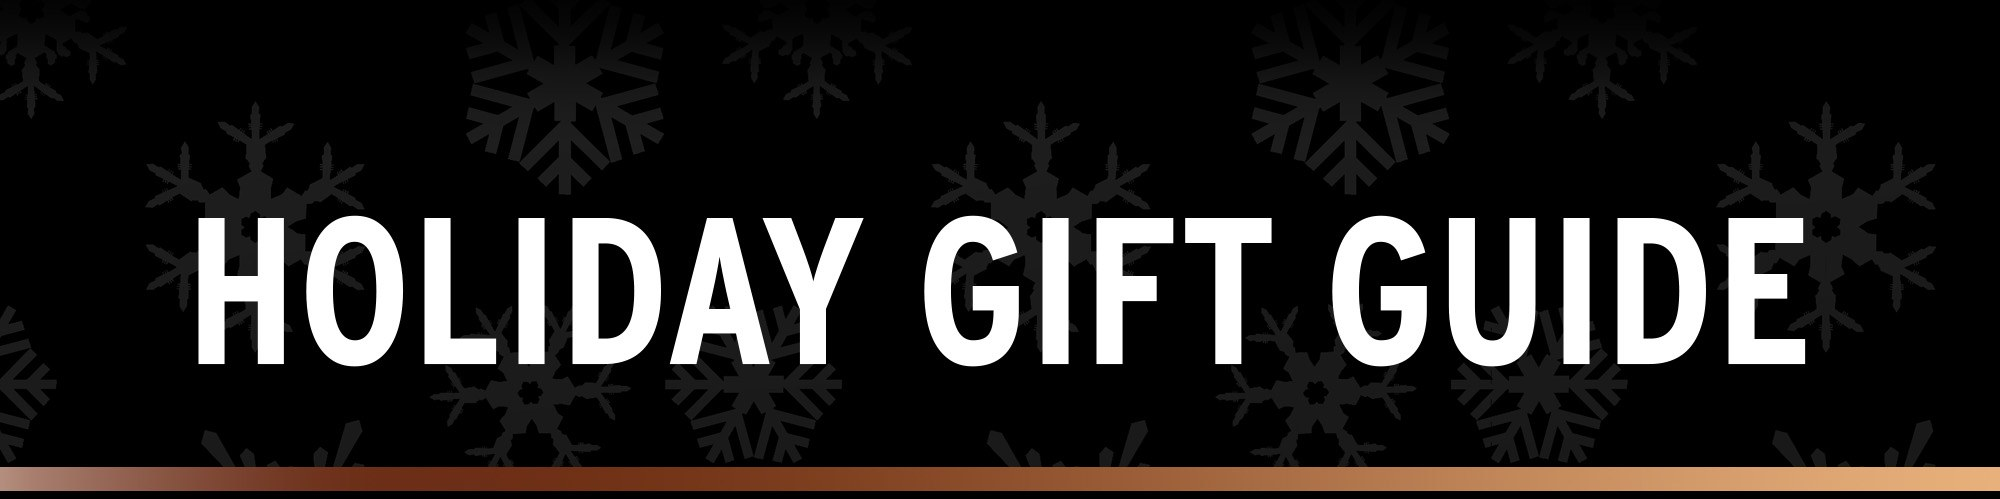 Klipsch Holiday Gift Guide Hero 2017 2